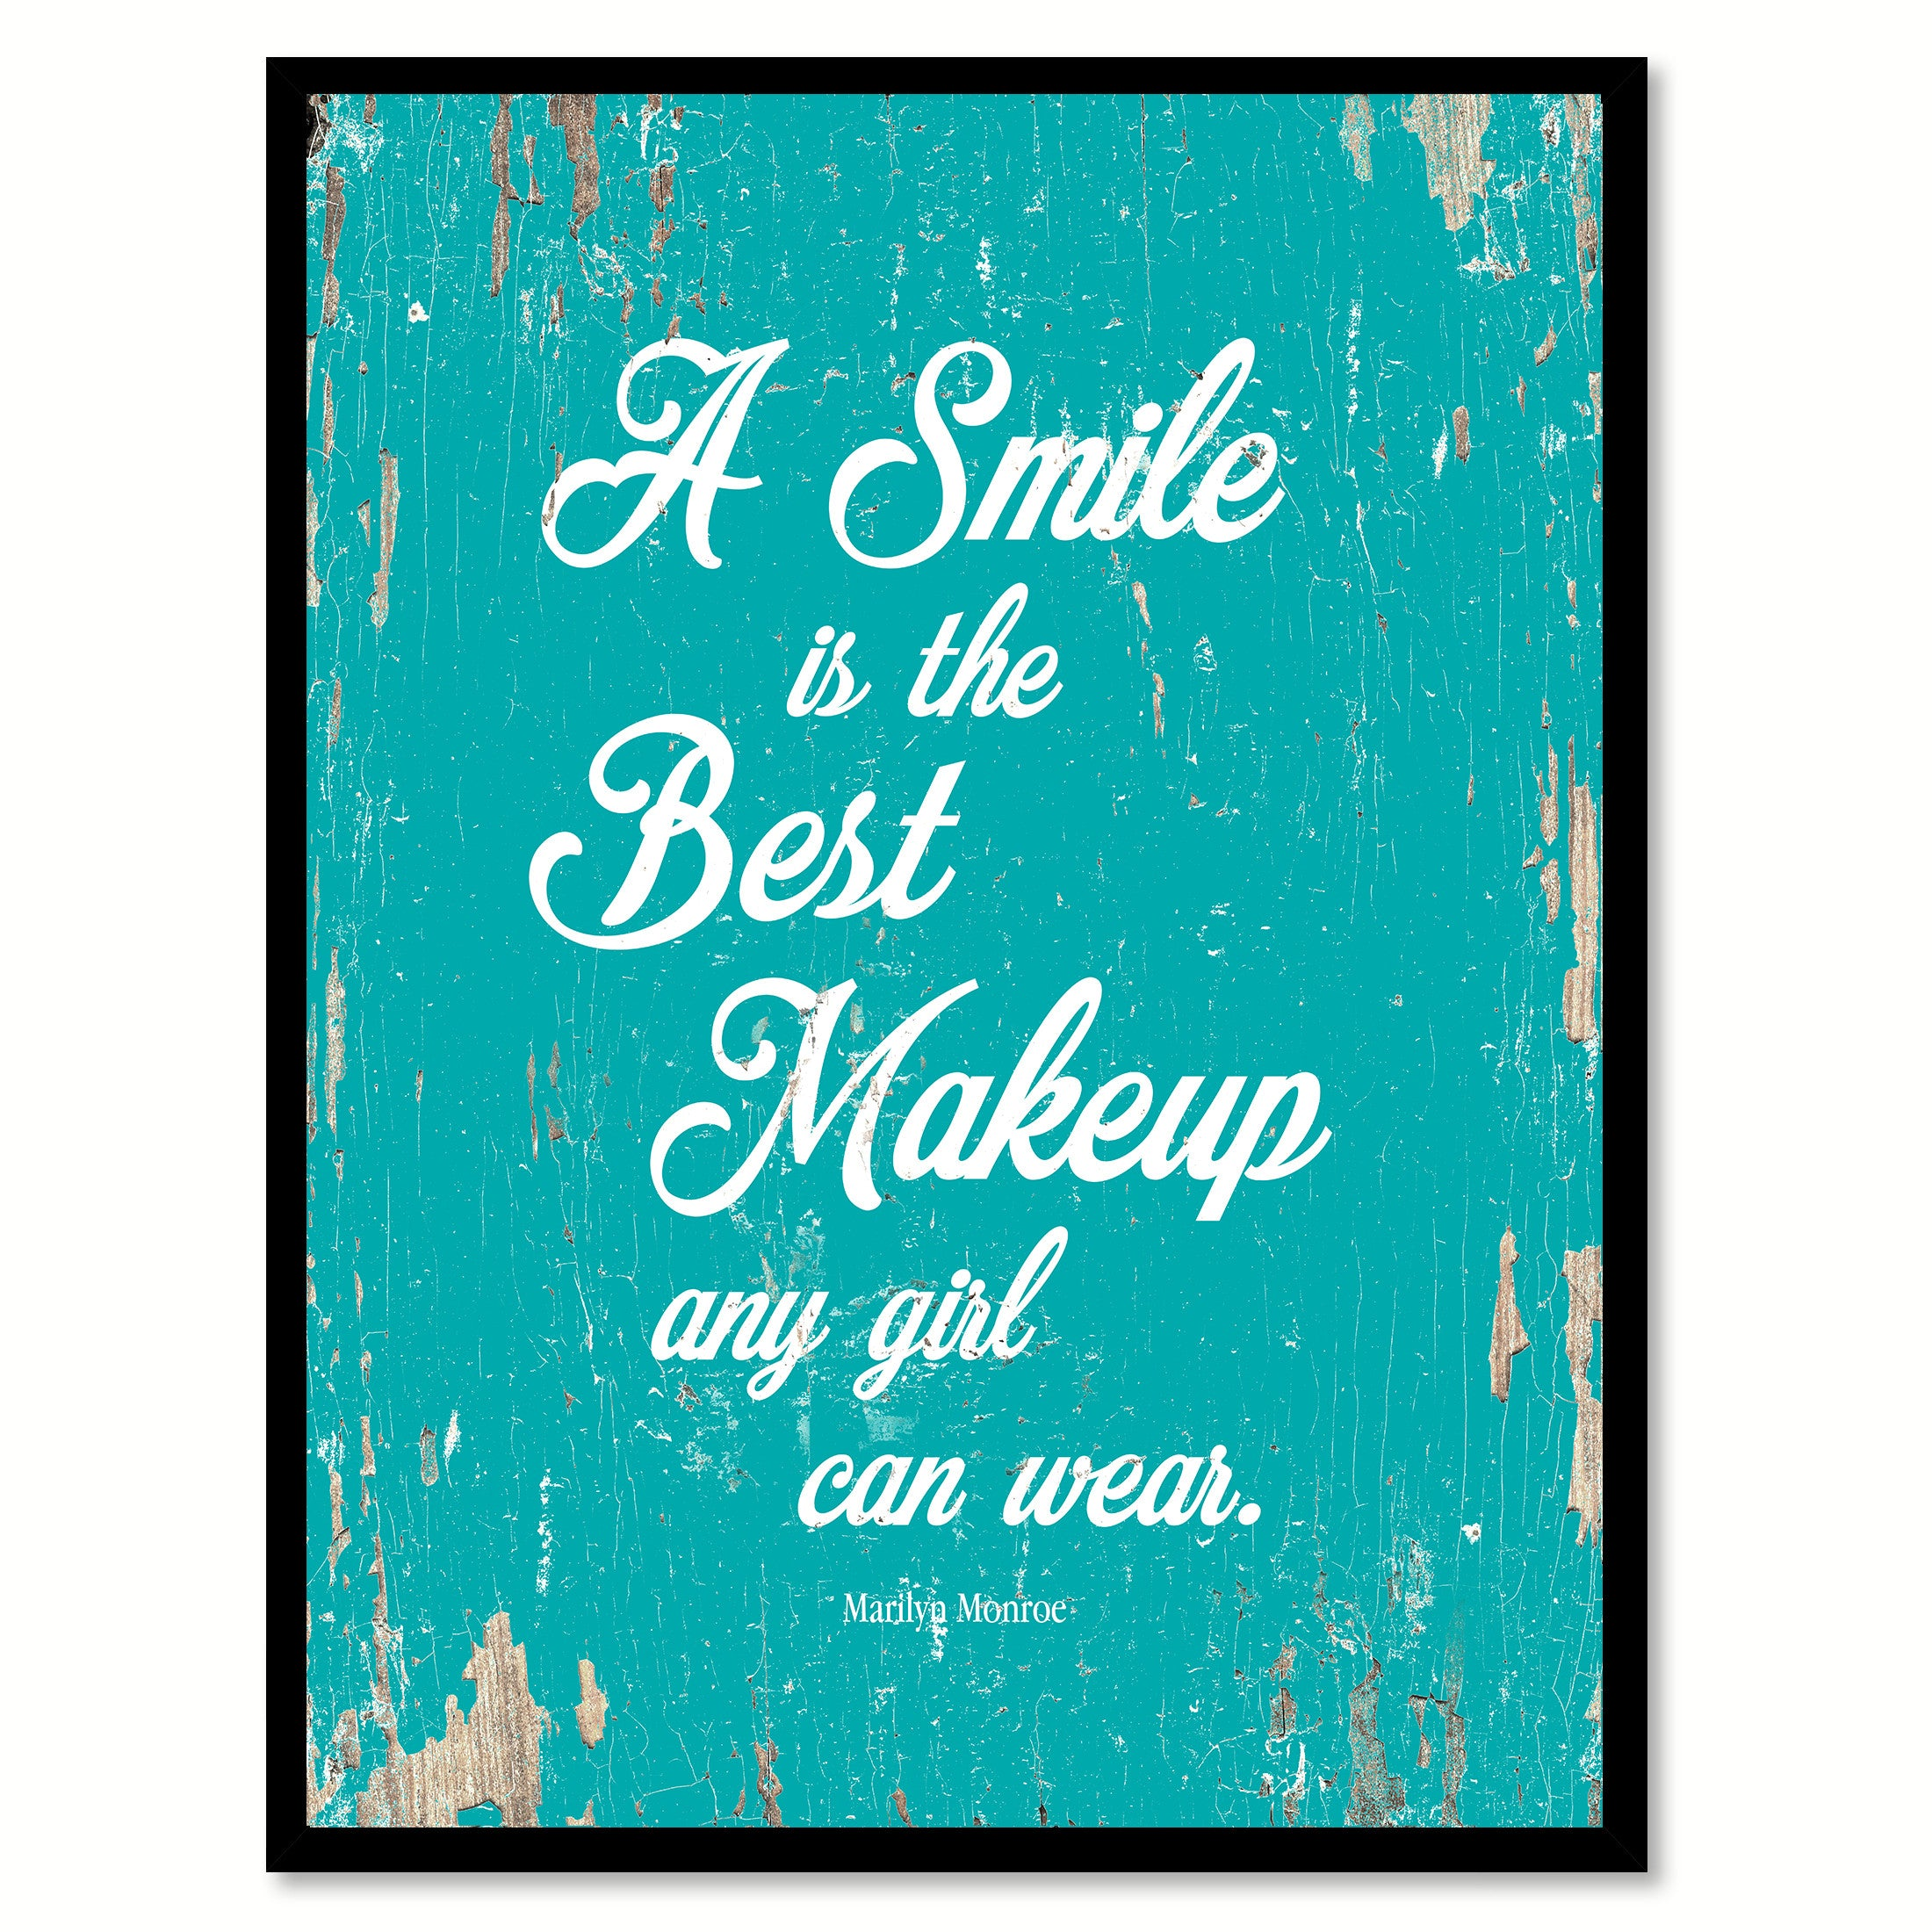 A Smile Is The Best Makeup Marilyn Monroe Quote Saying Home Decor Wall Art Gift Ideas 111665